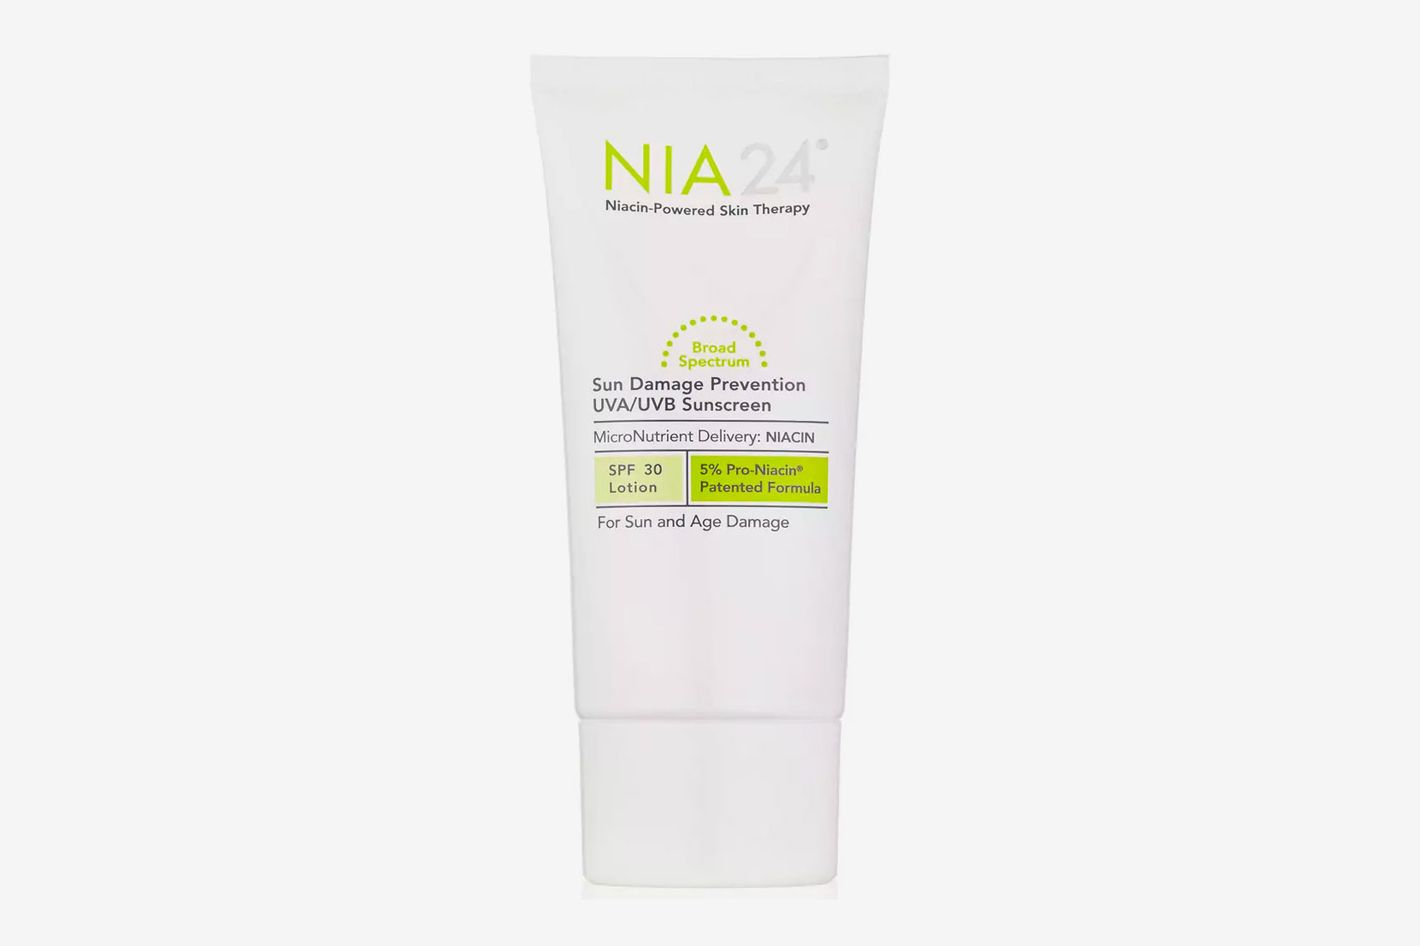 Nia 24 Sun Prevention 100 Percent Mineral Sunscreen SPF 30